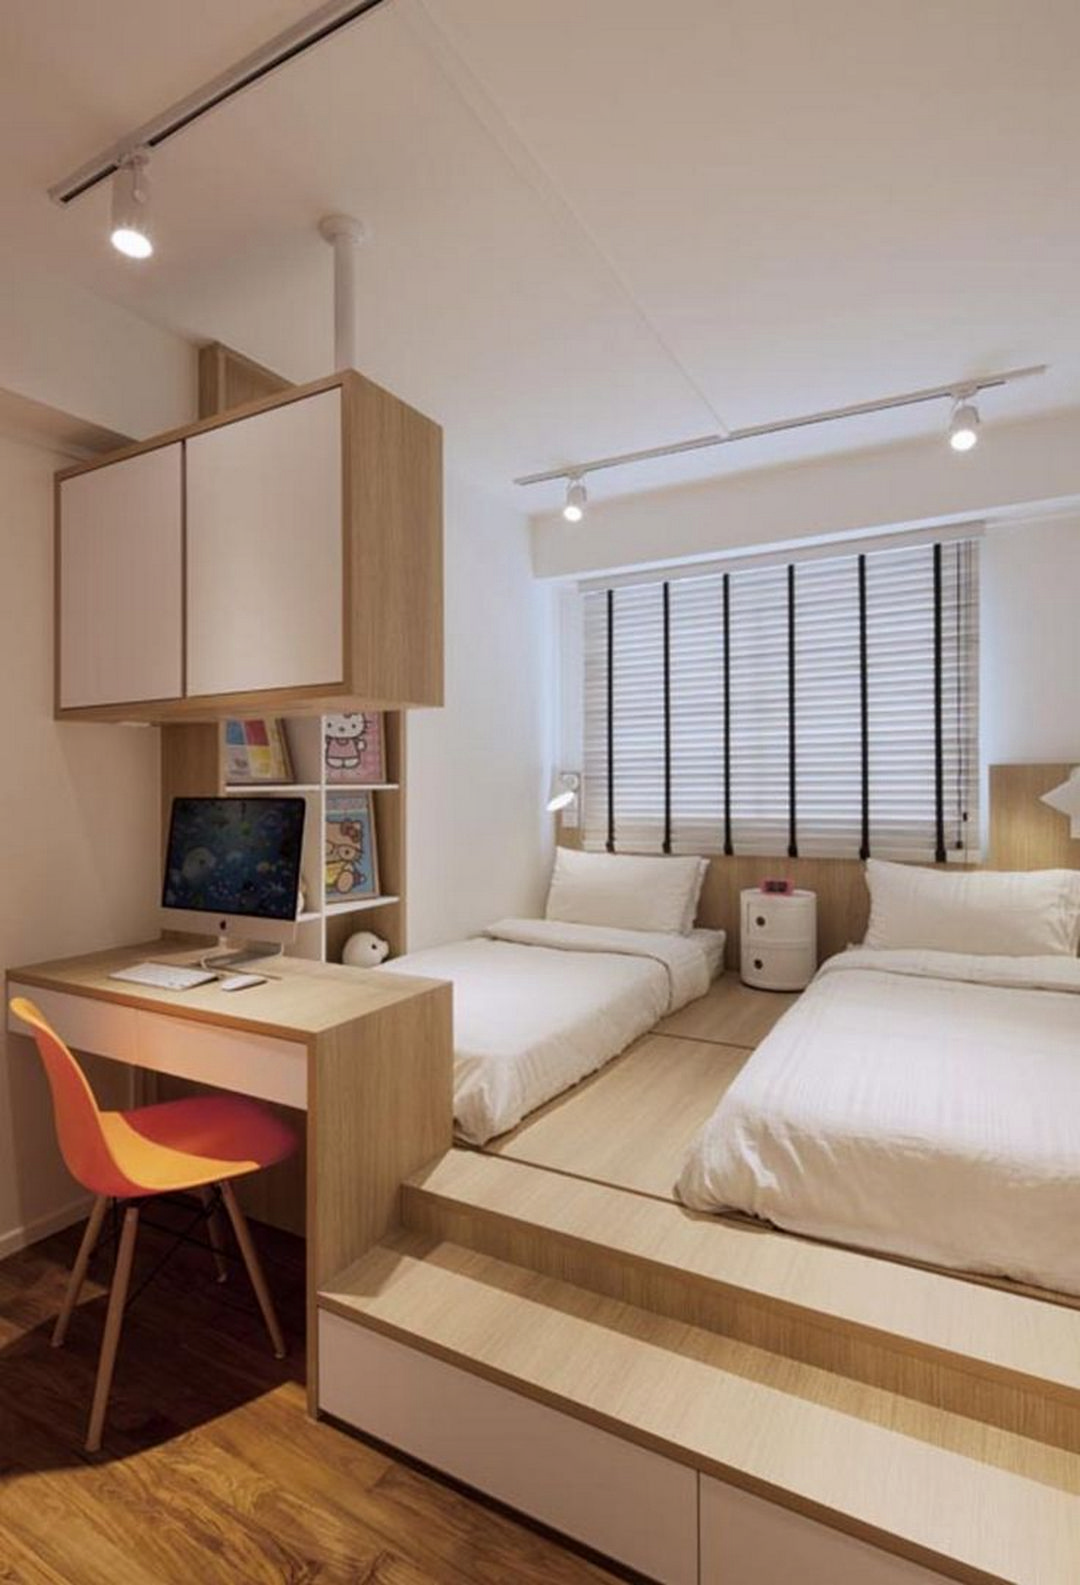 Hale Punanue A Simple Luxury Beach House Rental With Stunning Views From Every Room Bedroom Interior Small Room Design Room Renovation